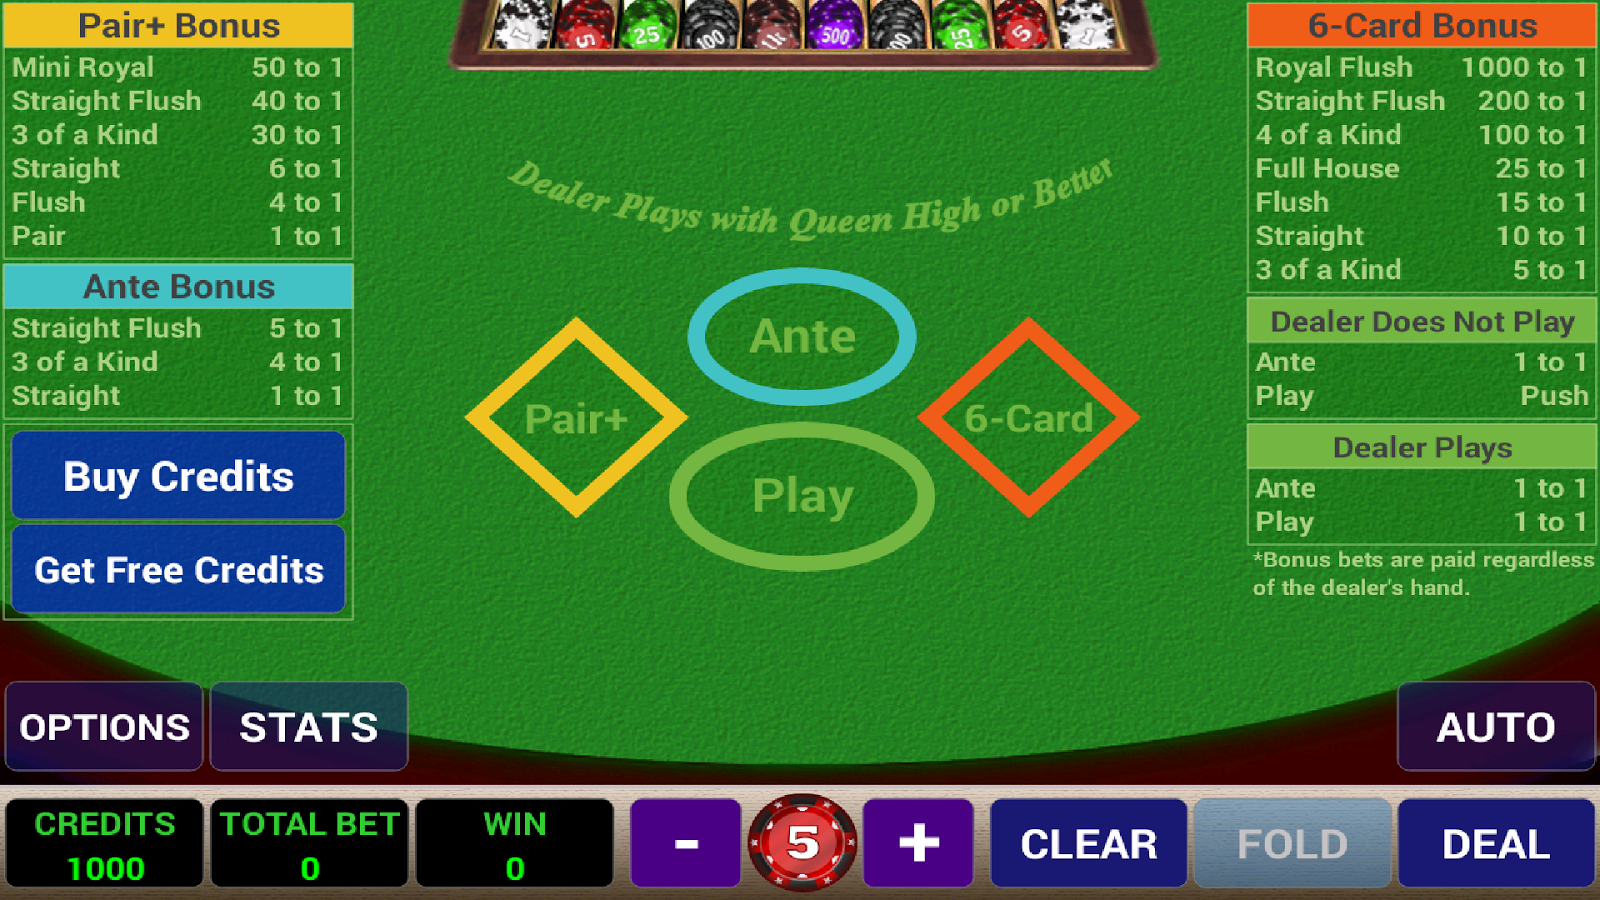 3 card poker with 6 card bonus